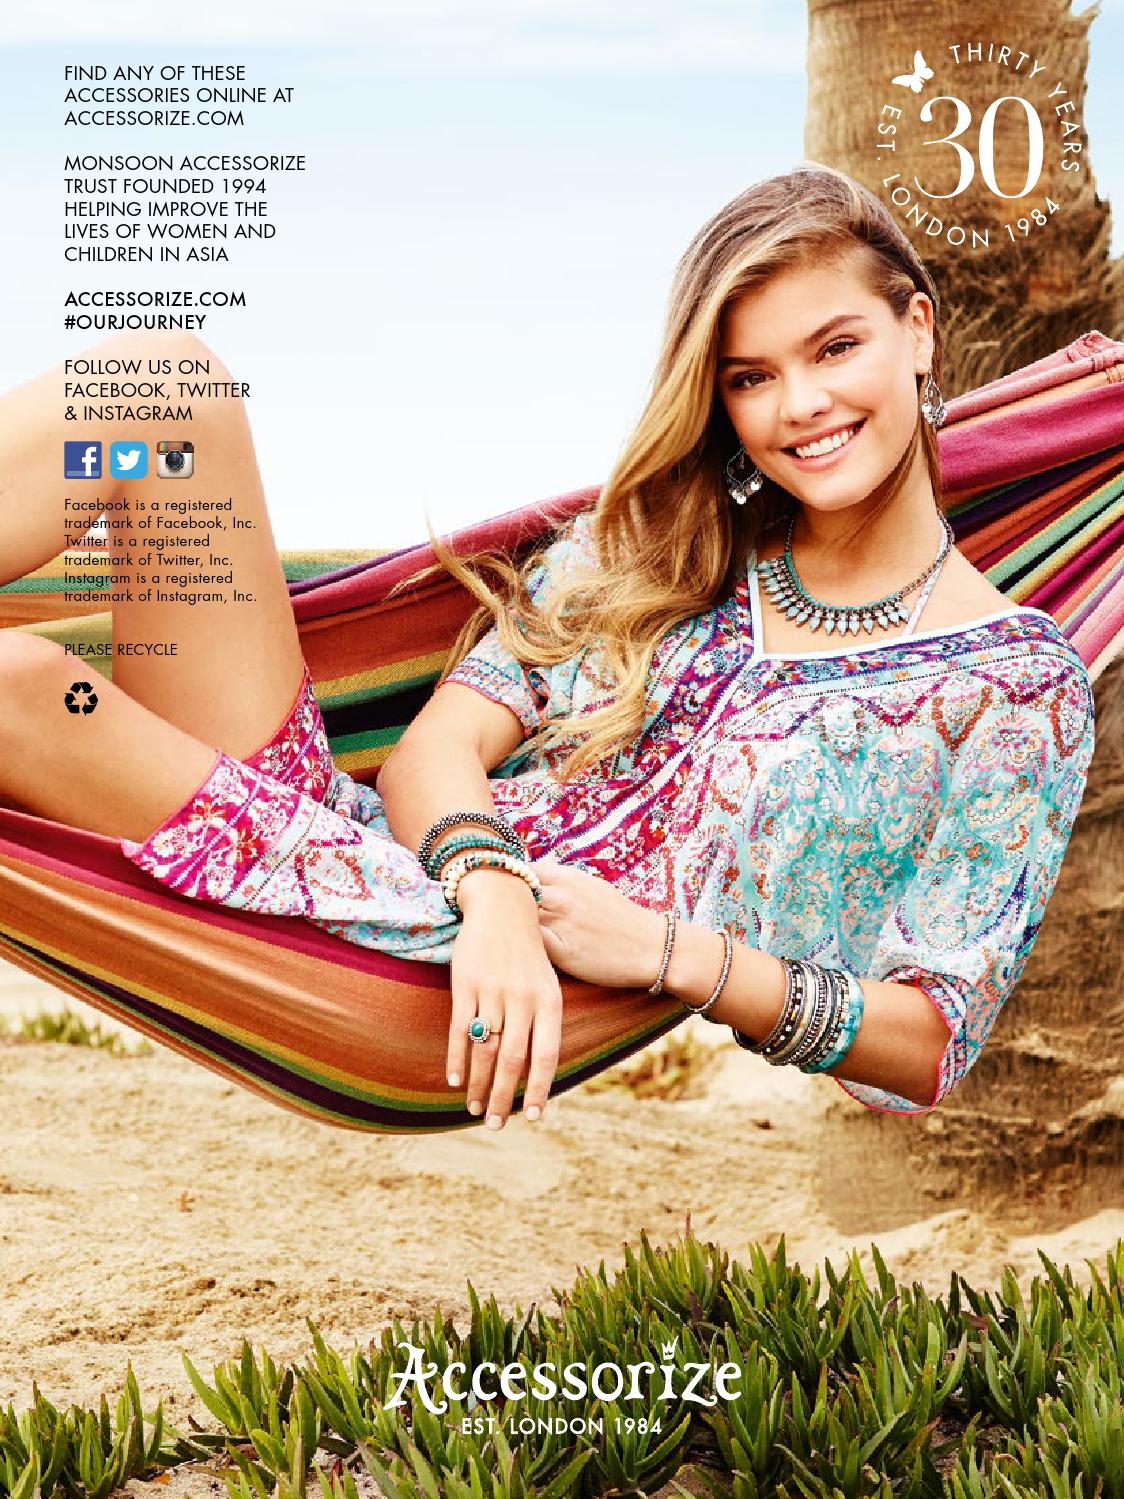 nina-agdal-accessorize-lookbook-spring-2014-11